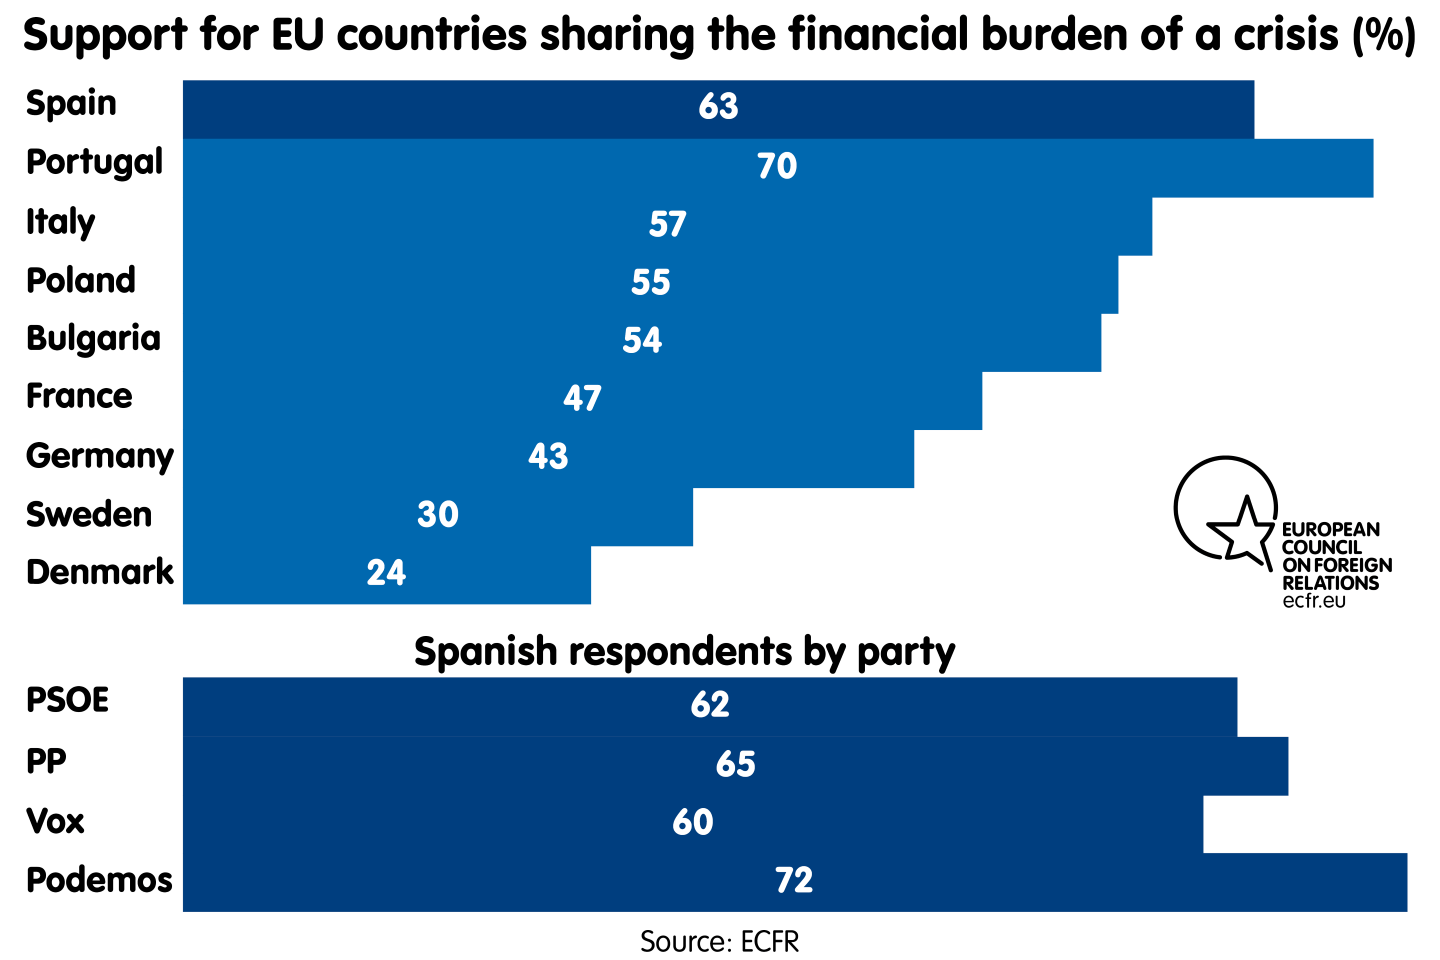 Support for EU countries sharing the financial burden of a crisis. By country and in Spain by party